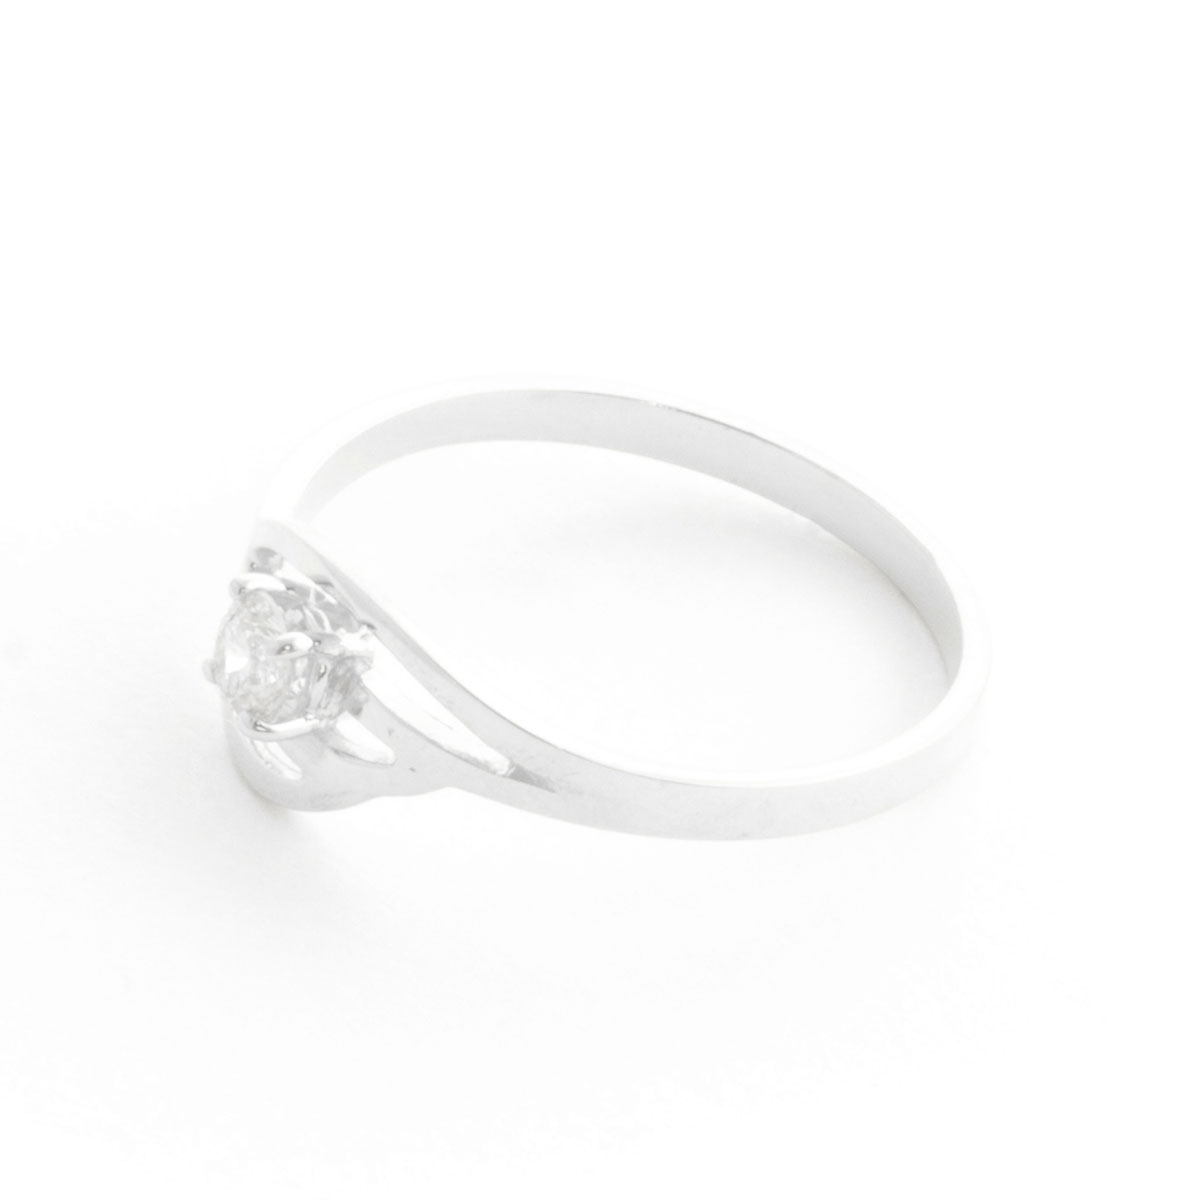 Round Cut Diamond Ring 0.15 ct in 9ct White Gold